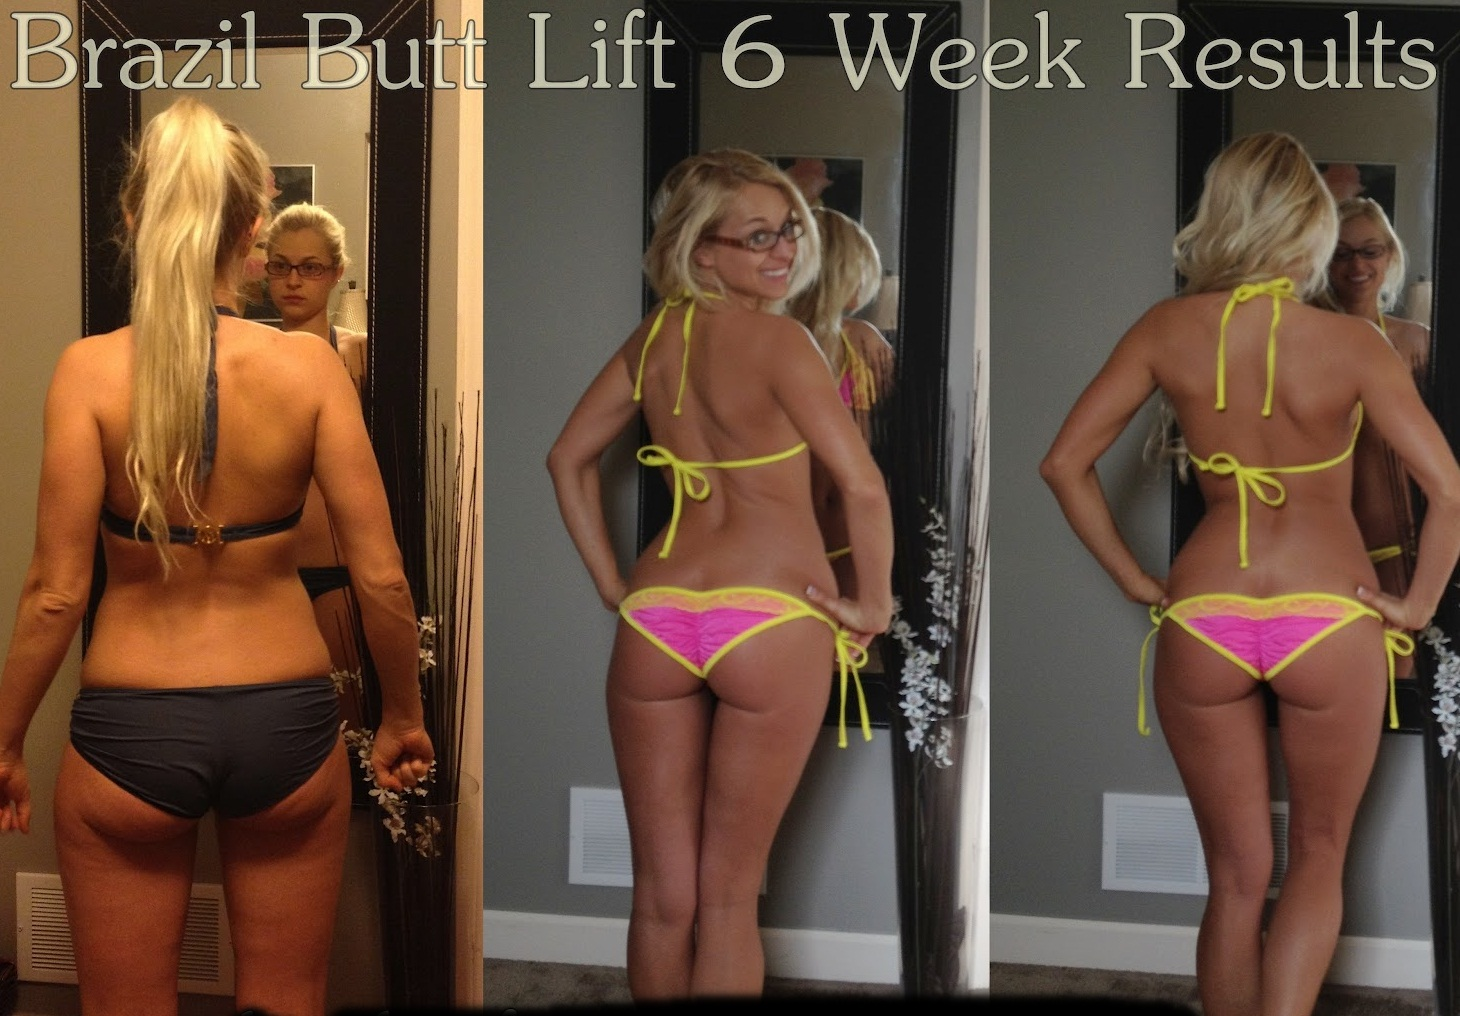 Bikini Fit: Brazil Butt Lift Results